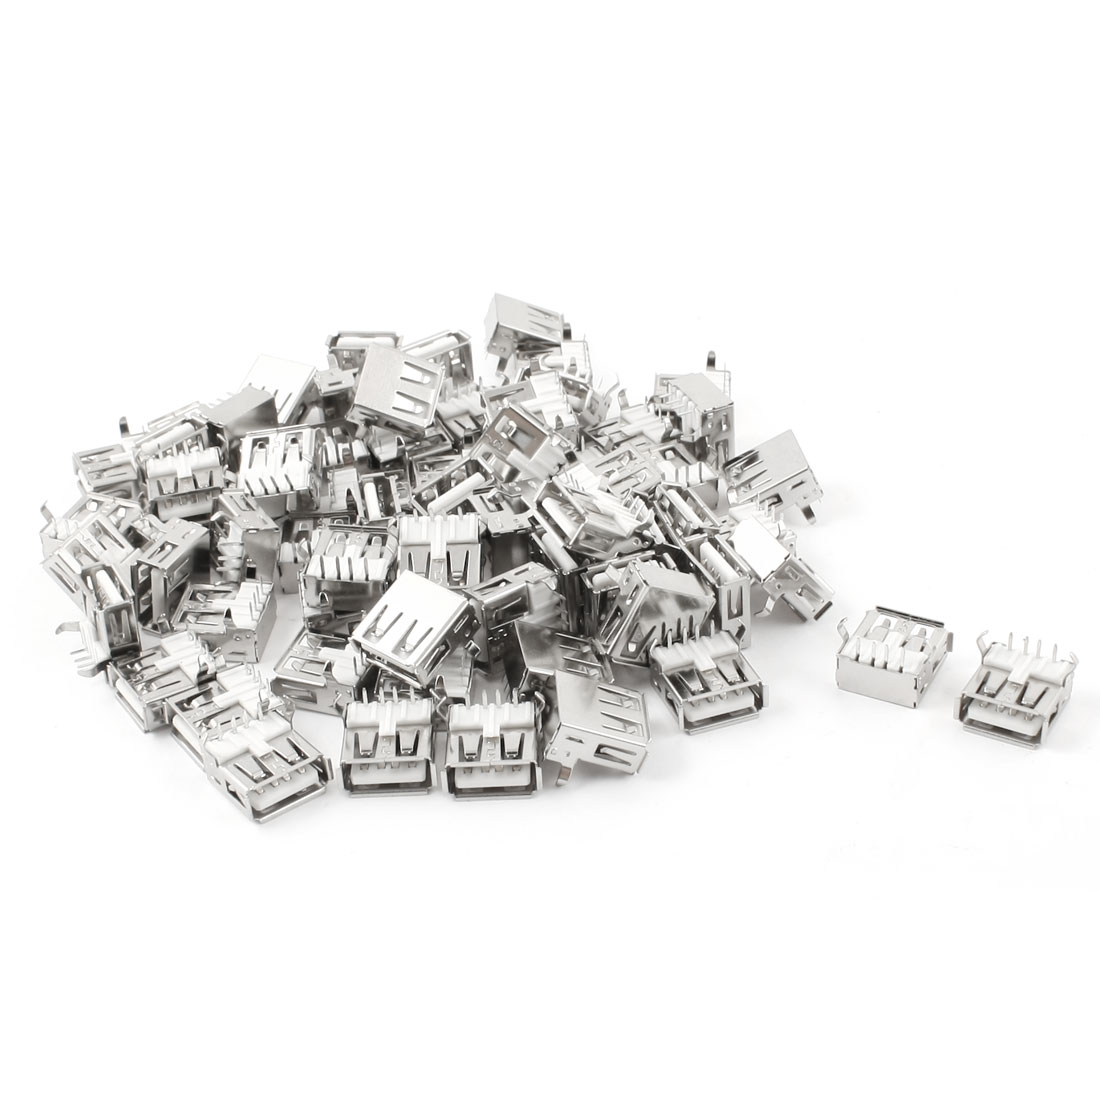 70 Pcs USB Type A Female 4 Pin Right Angle Jack Plug Solder Connectors